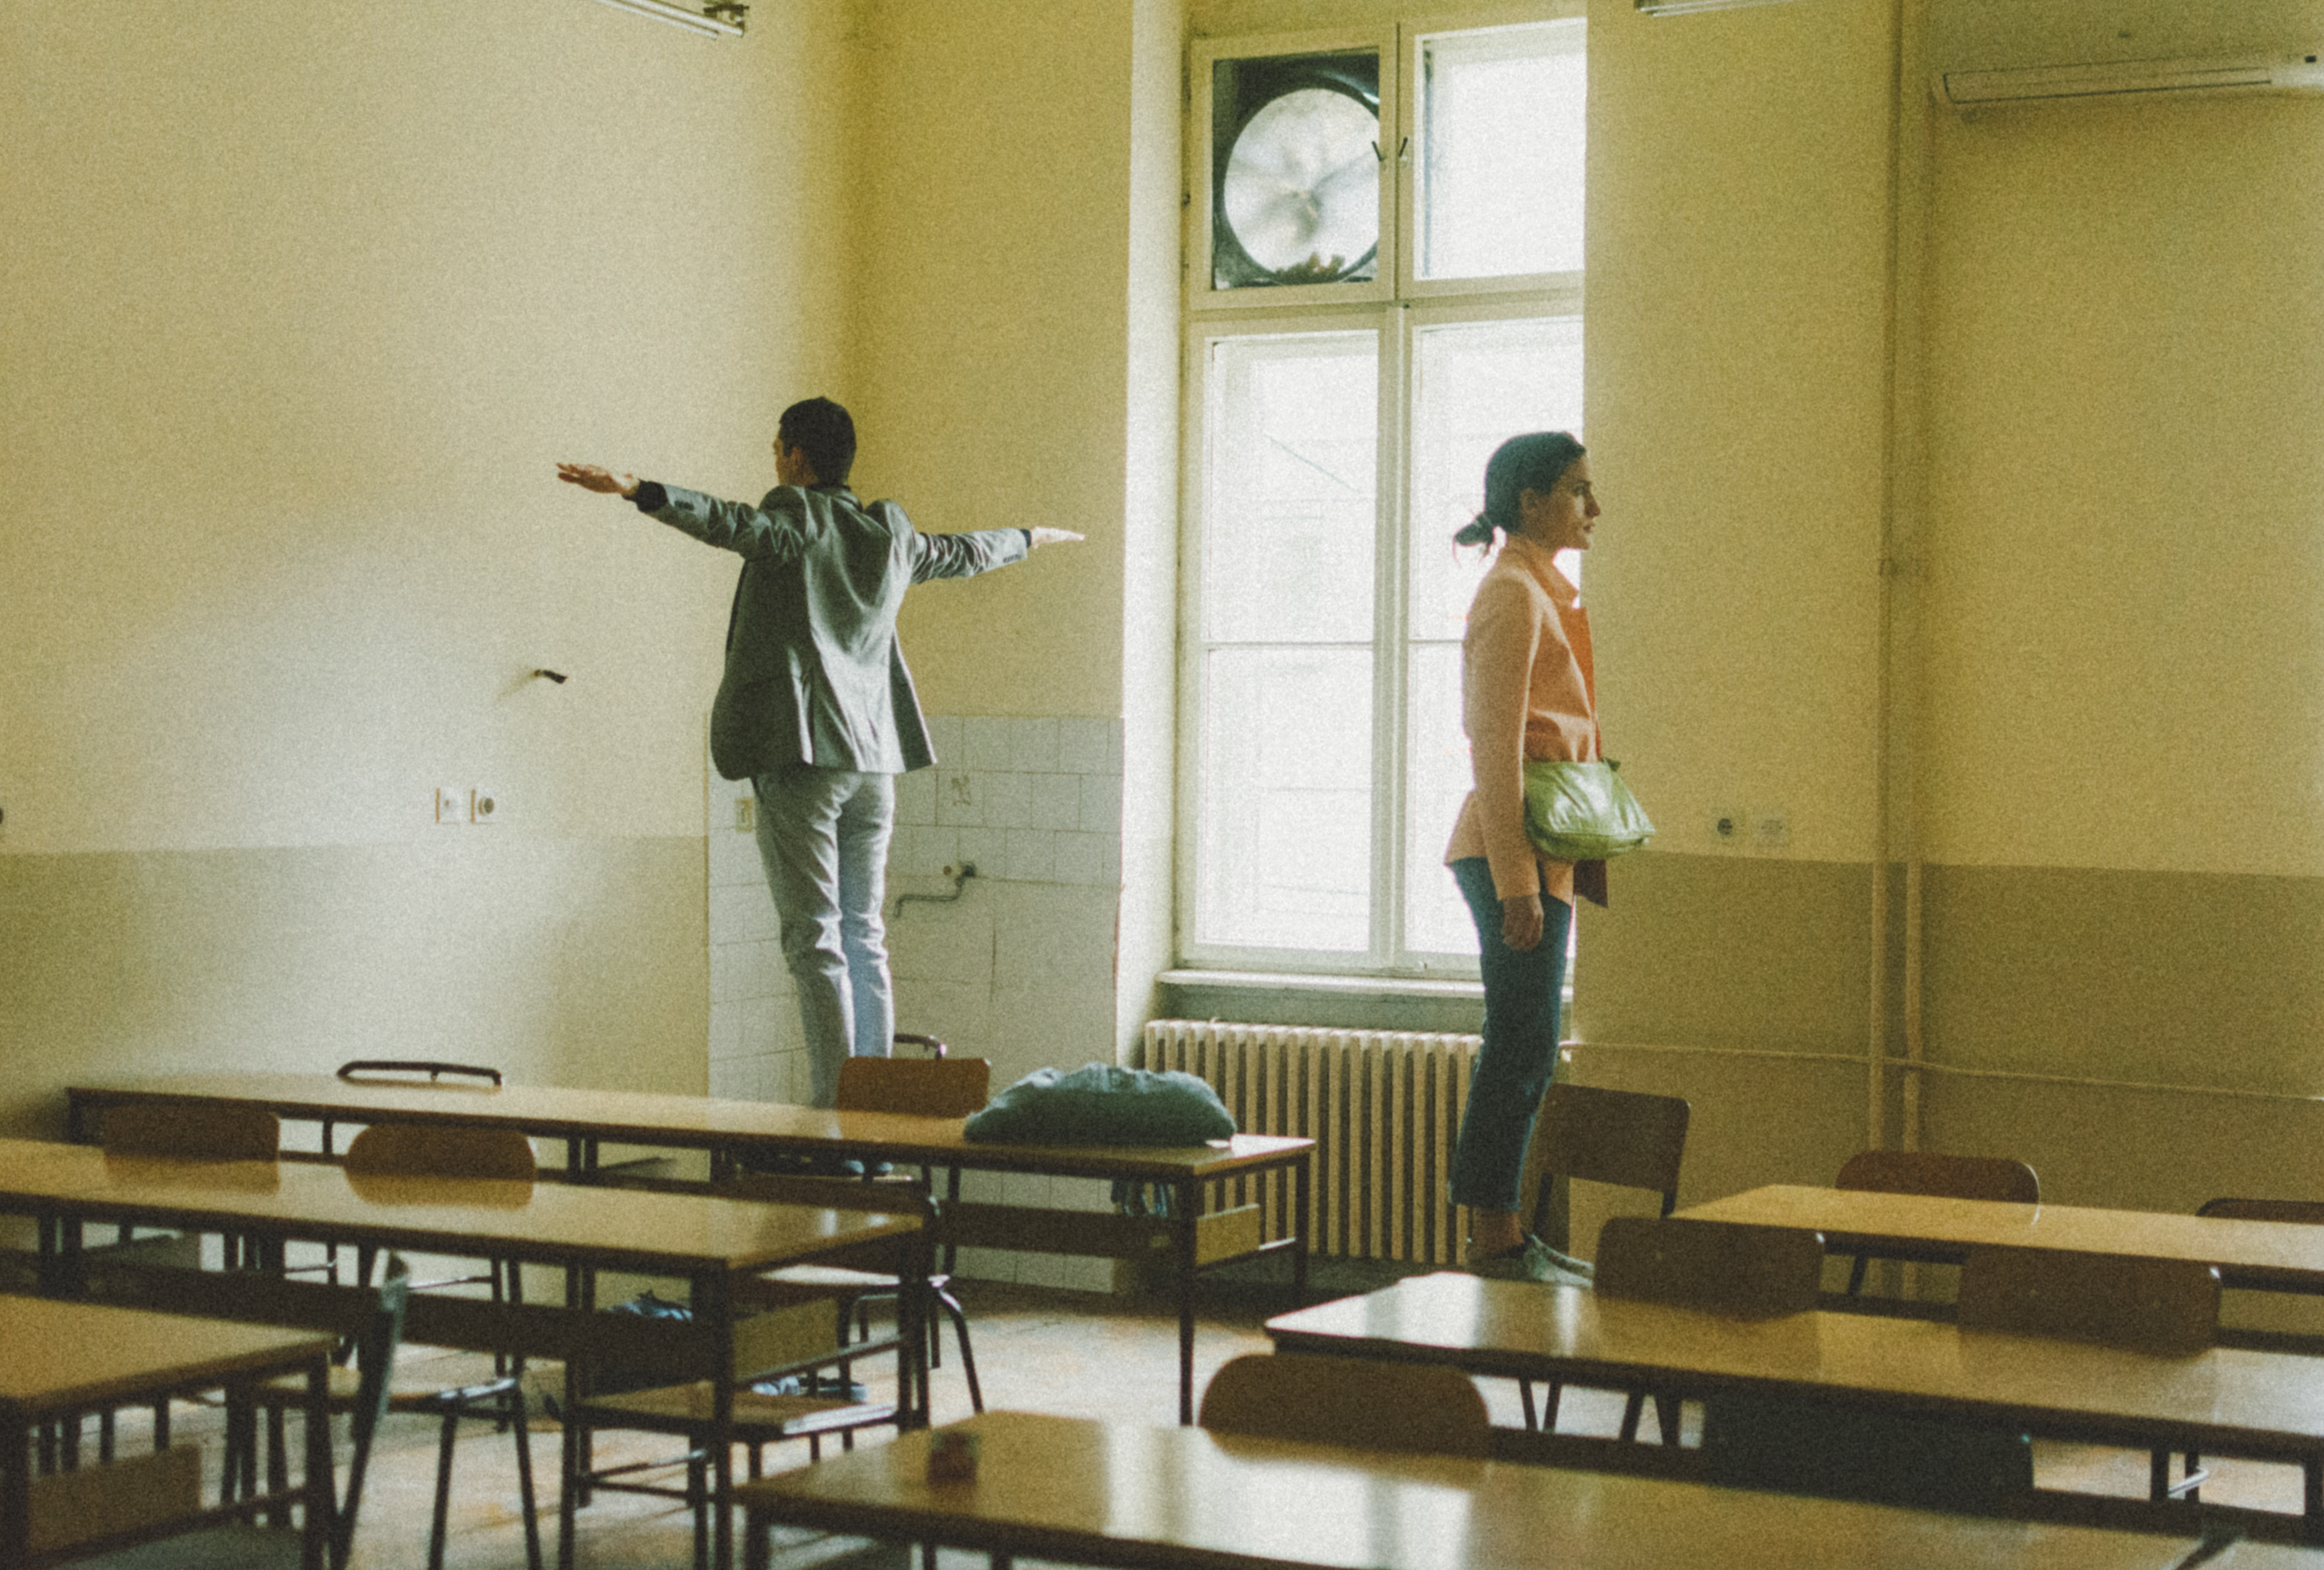 Photograph of two people in a classroom by https://unsplash.com/@ngelah